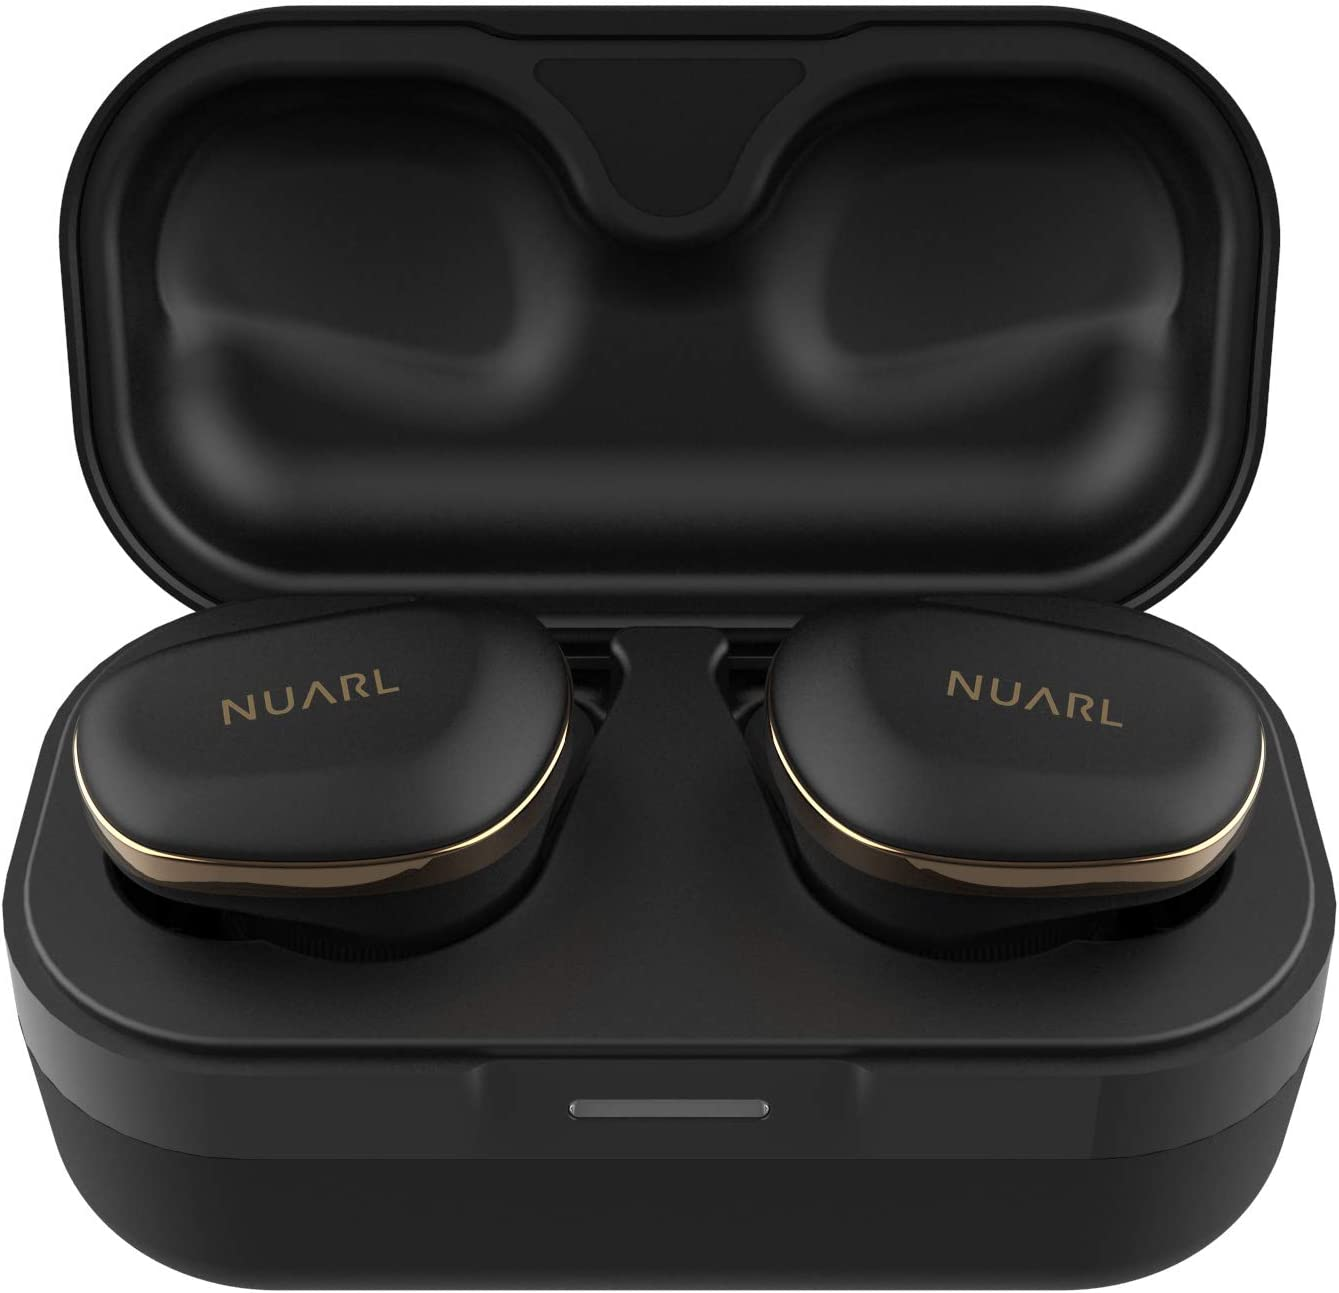 NUARL N6 Pro TWS True Wireless Stereo Earphones Earbuds Bluetooth5 11hr Playback aptX with HDSS IPX4 N6PRO-MB MATT Black